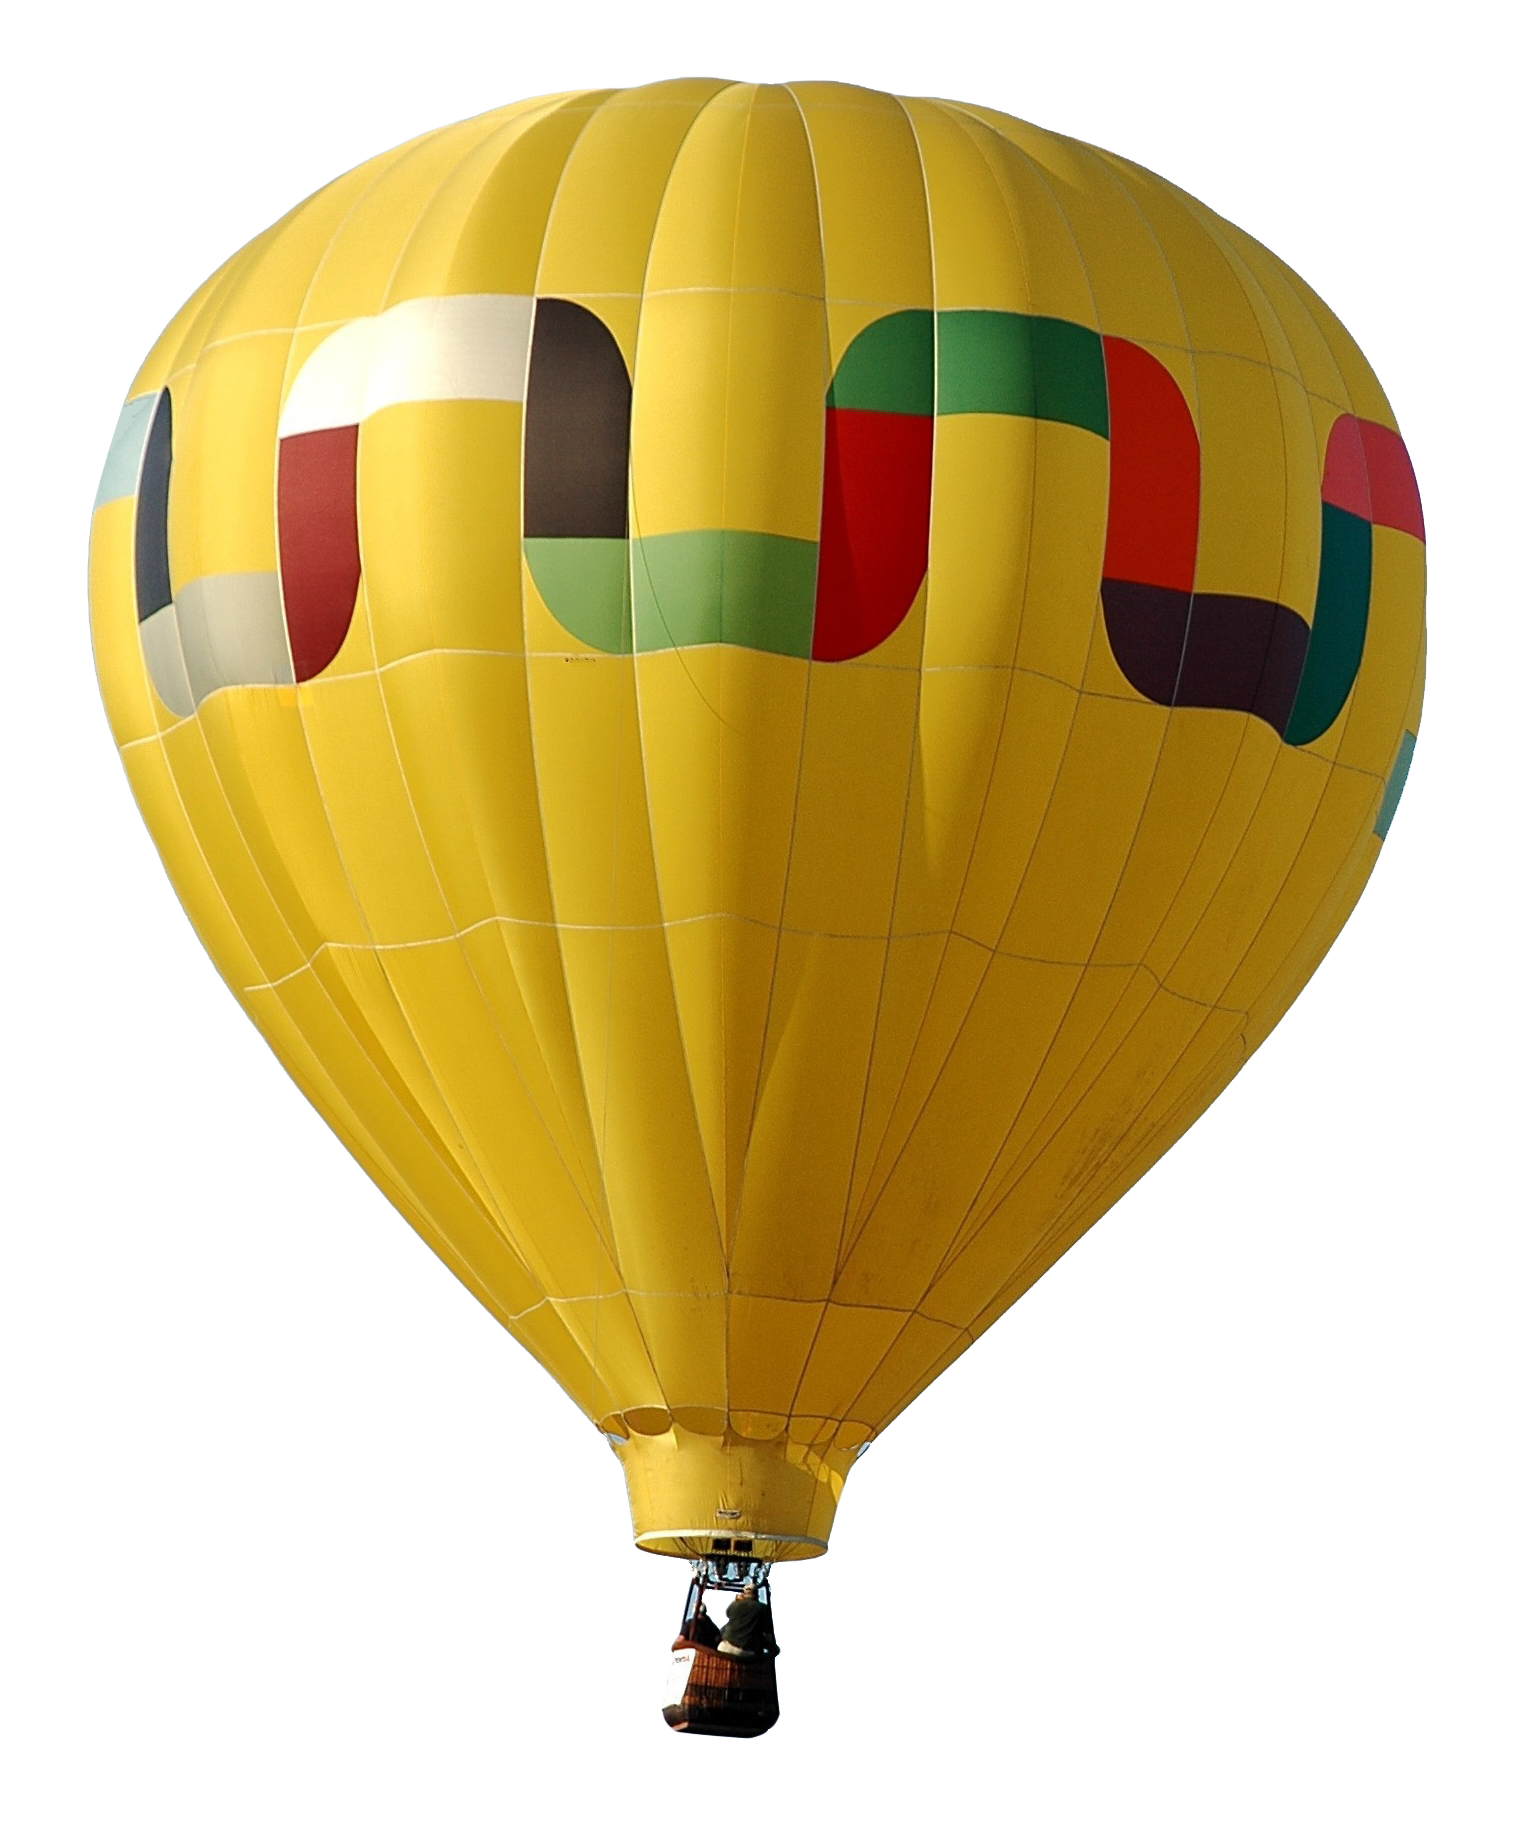 Air Balloon PNG Transparent Image - Gas Balloon PNG